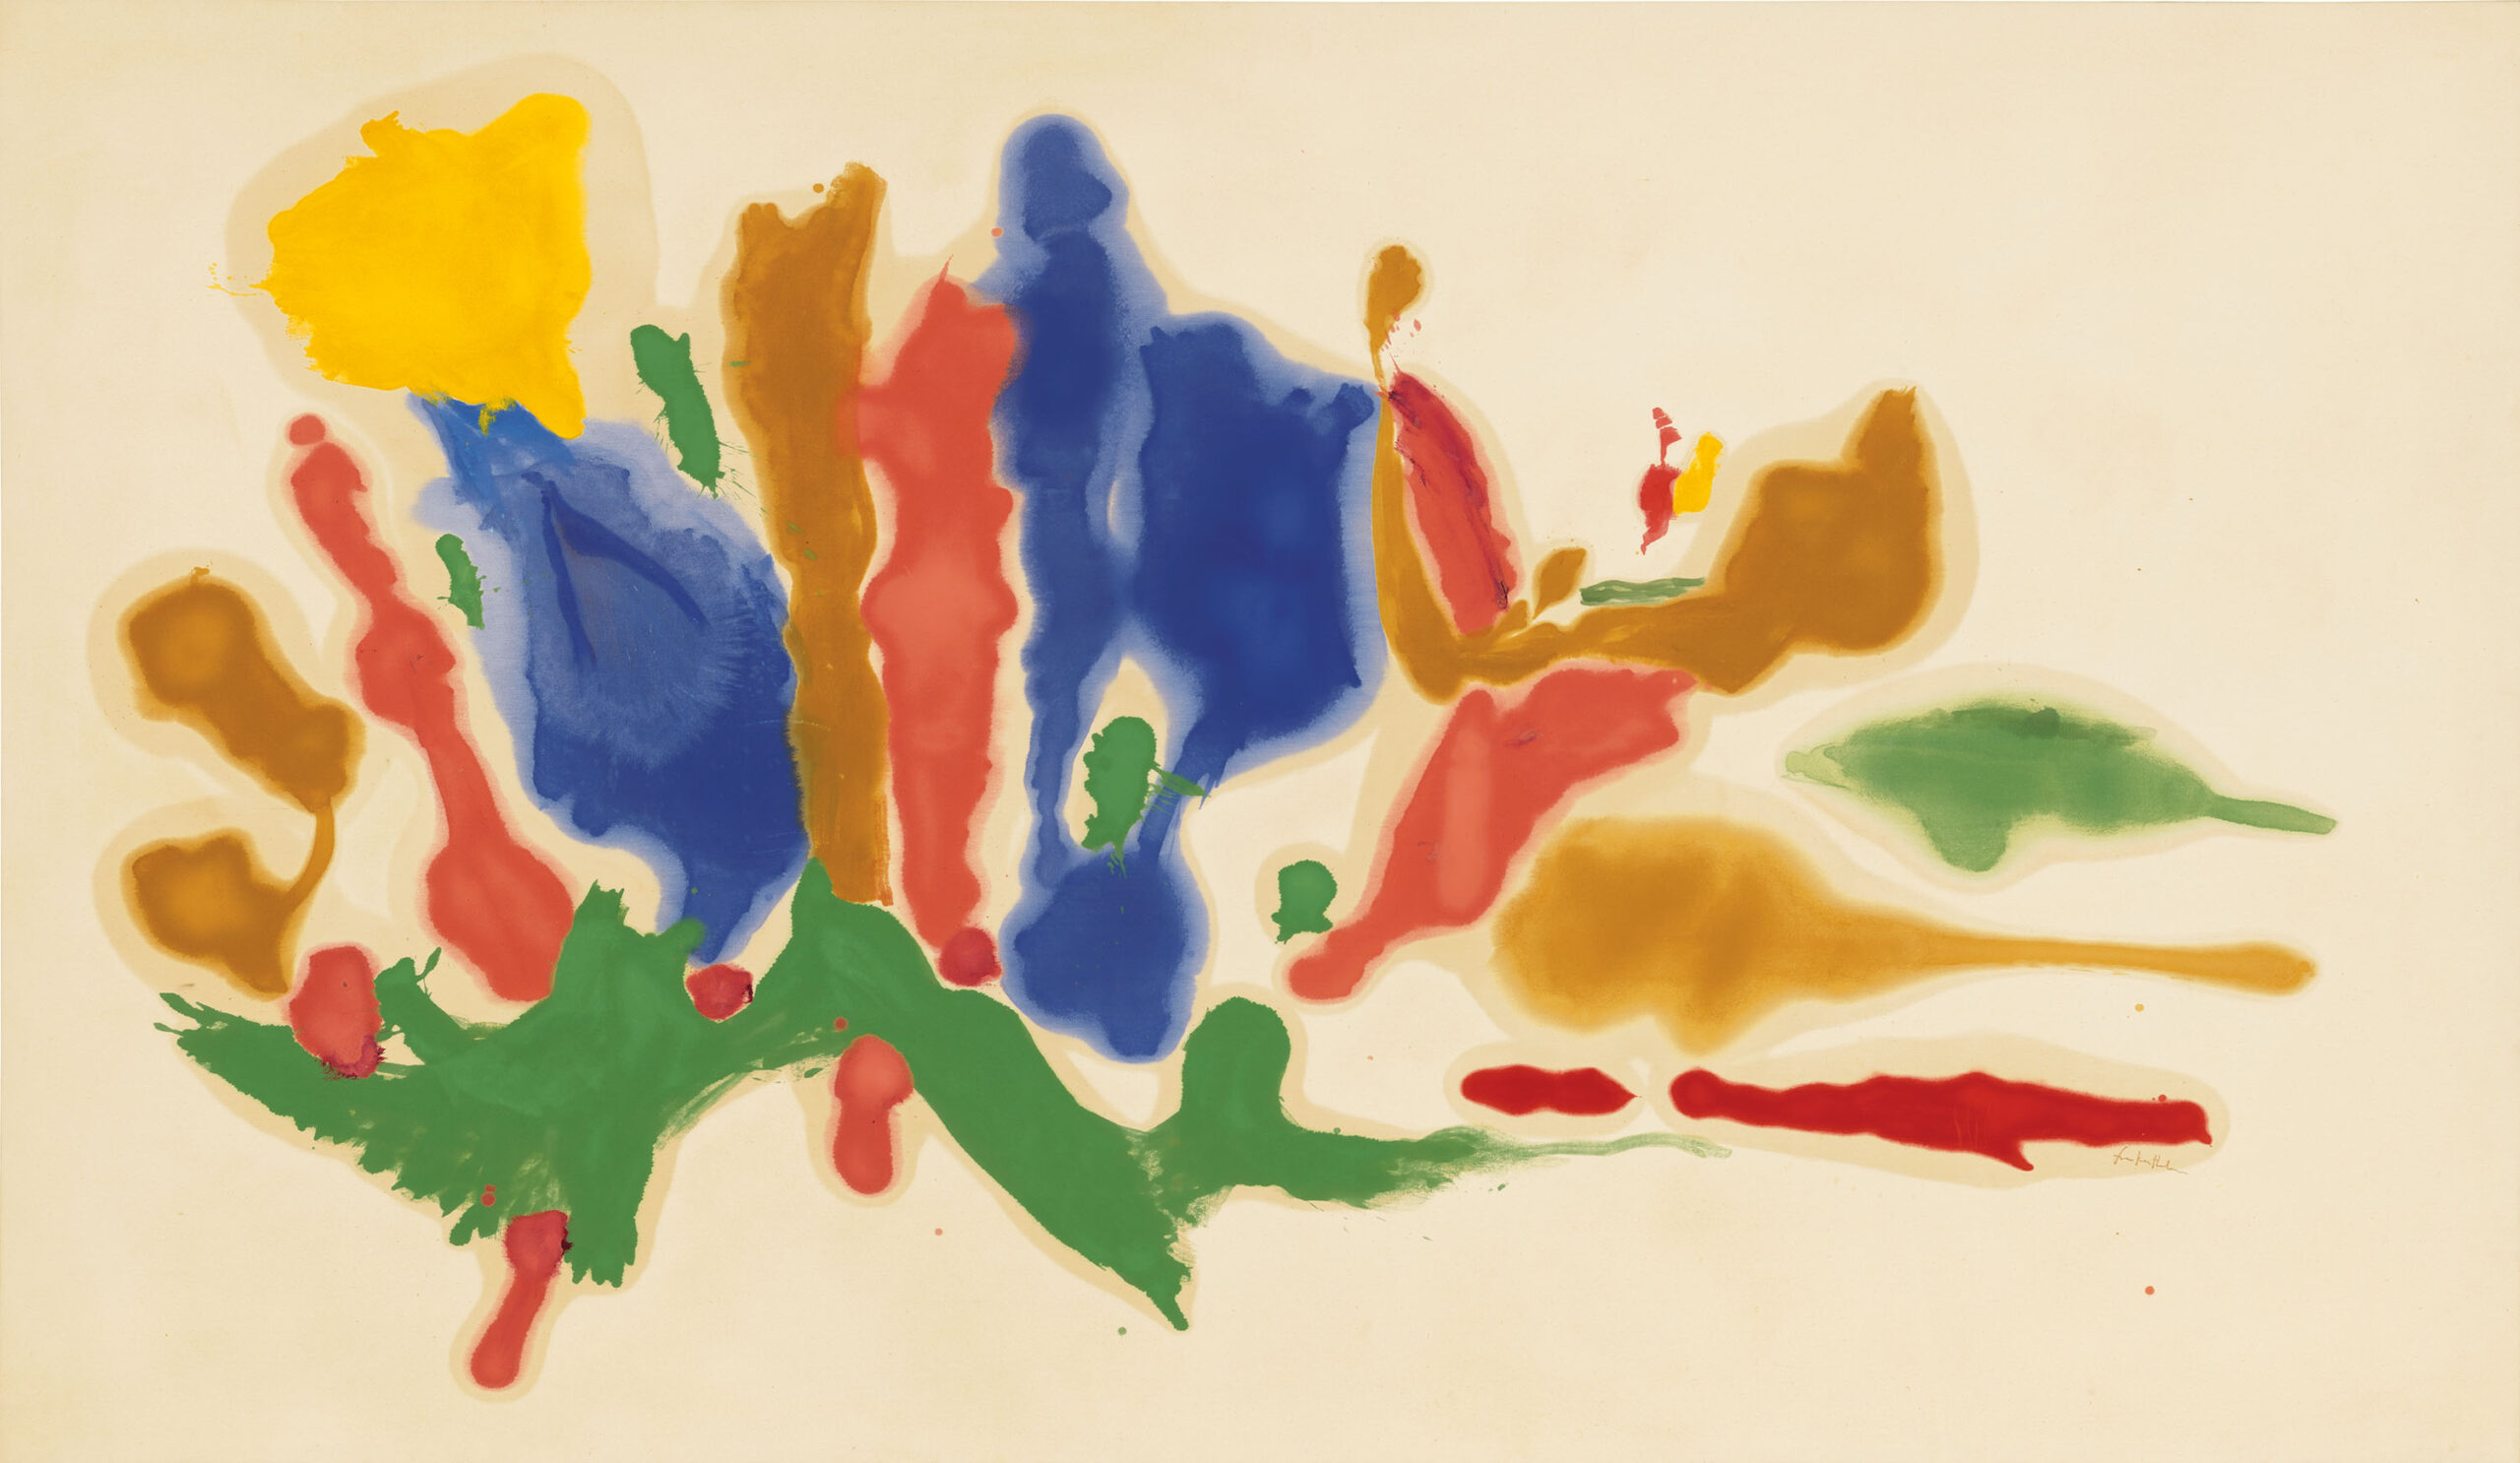 Helen Frankenthaler, Cool Summer, 1962, oil on canvas, 69 3/4 x 120 inches (177.2 x 304.8 cm). © 2021 Helen Frankenthaler Foundation, Inc. / Artists Rights Society (ARS), NY. Photo credit: Rob McKeever, courtesy Gagosian.